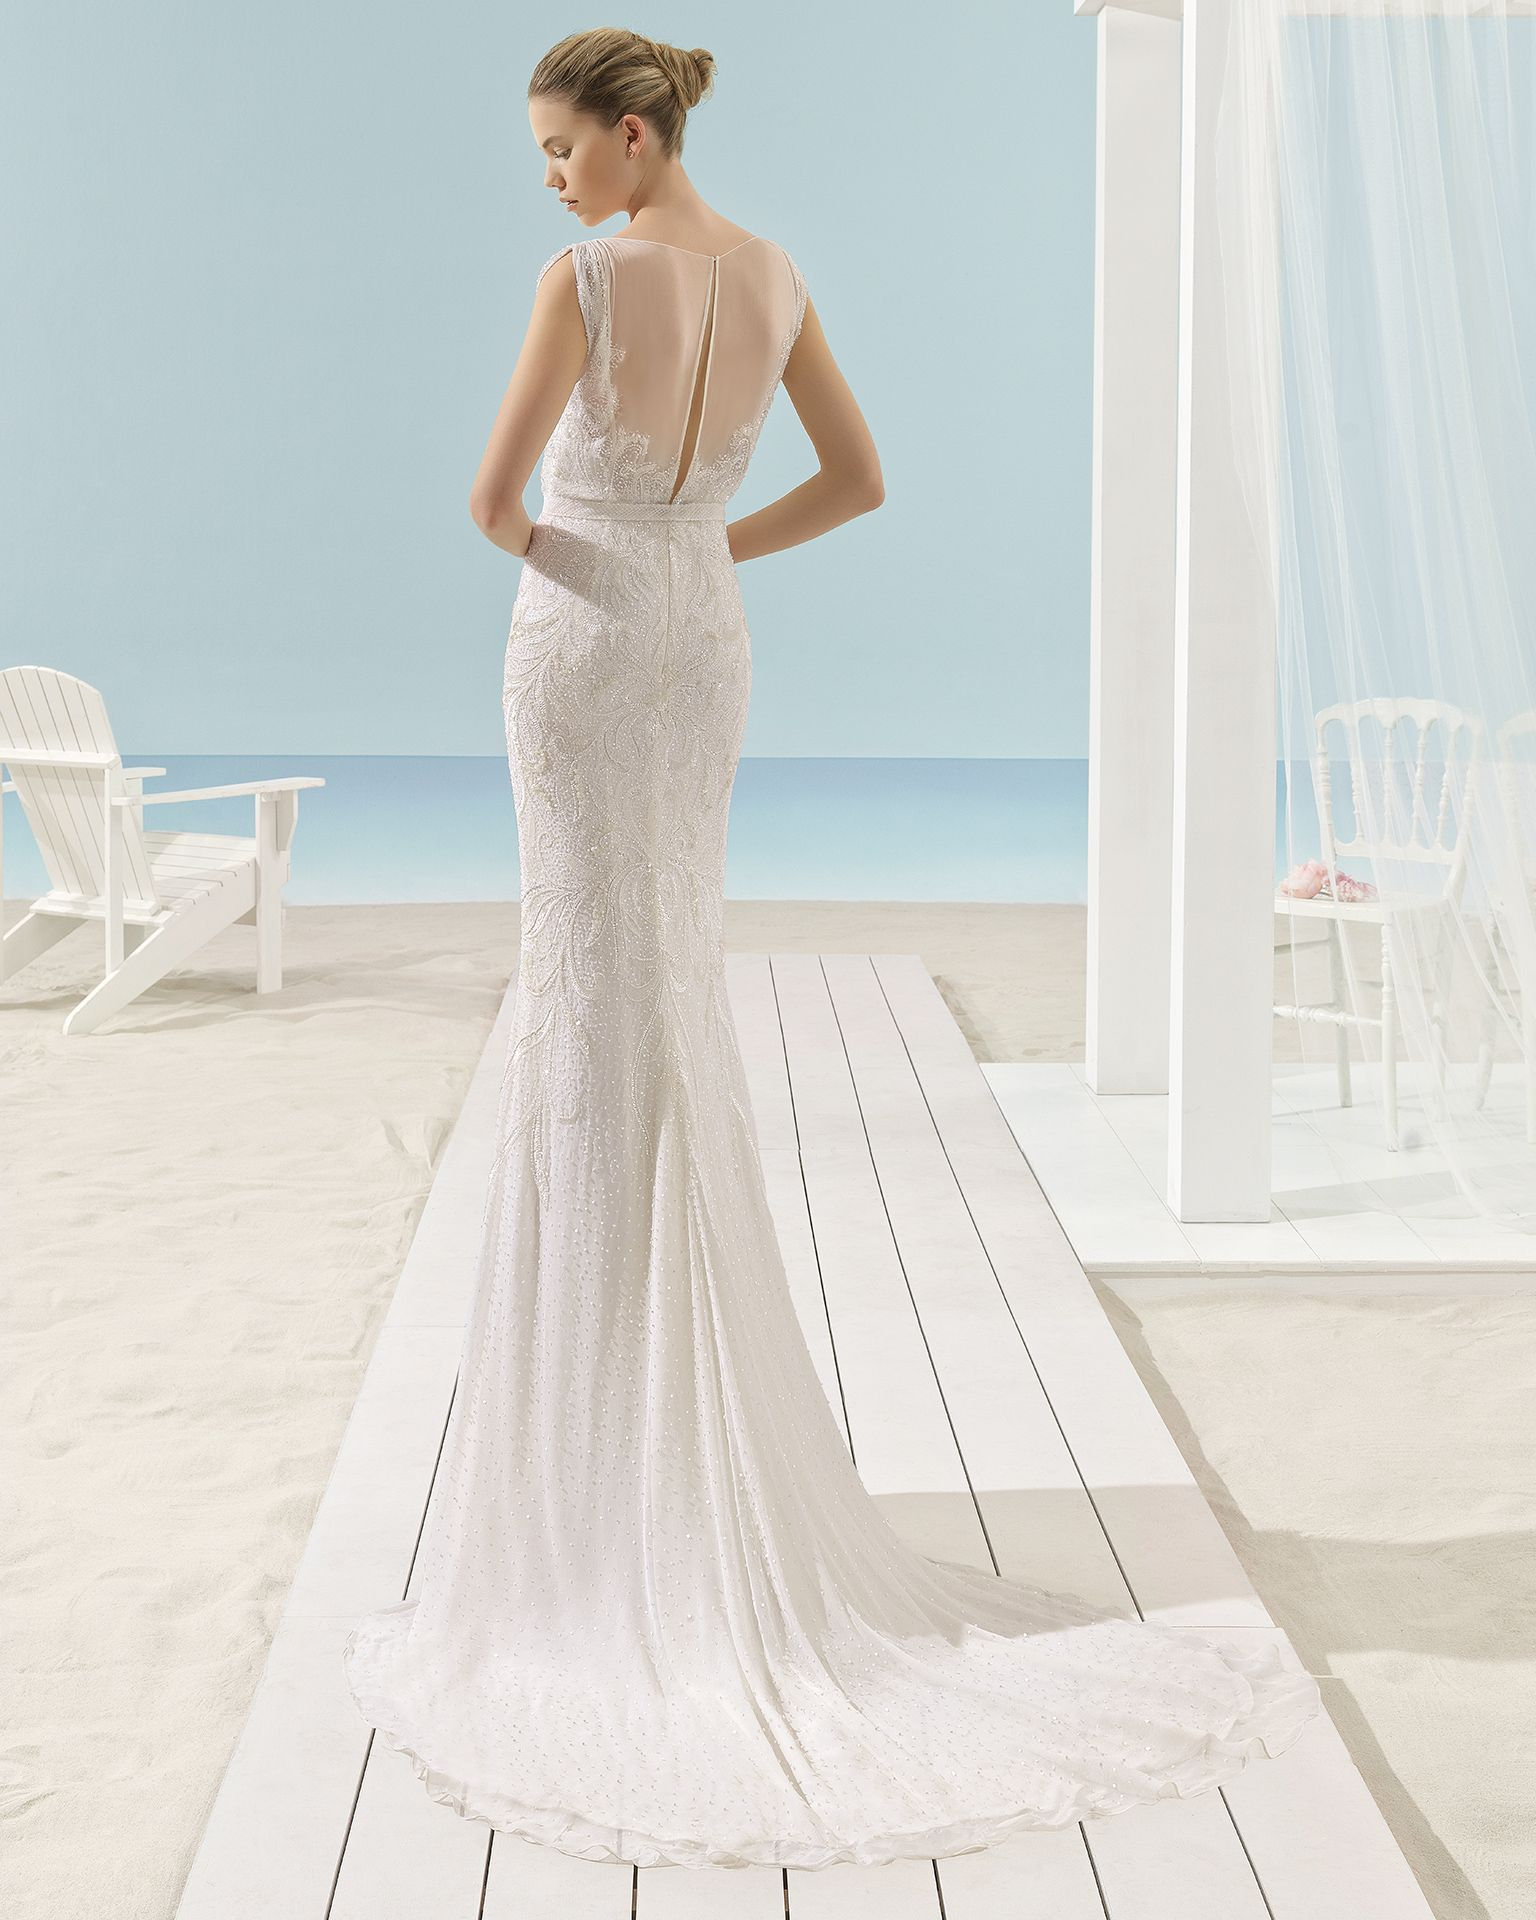 XANAT - 2017 Bridal Collection. Aire Barcelona Beach Wedding ...